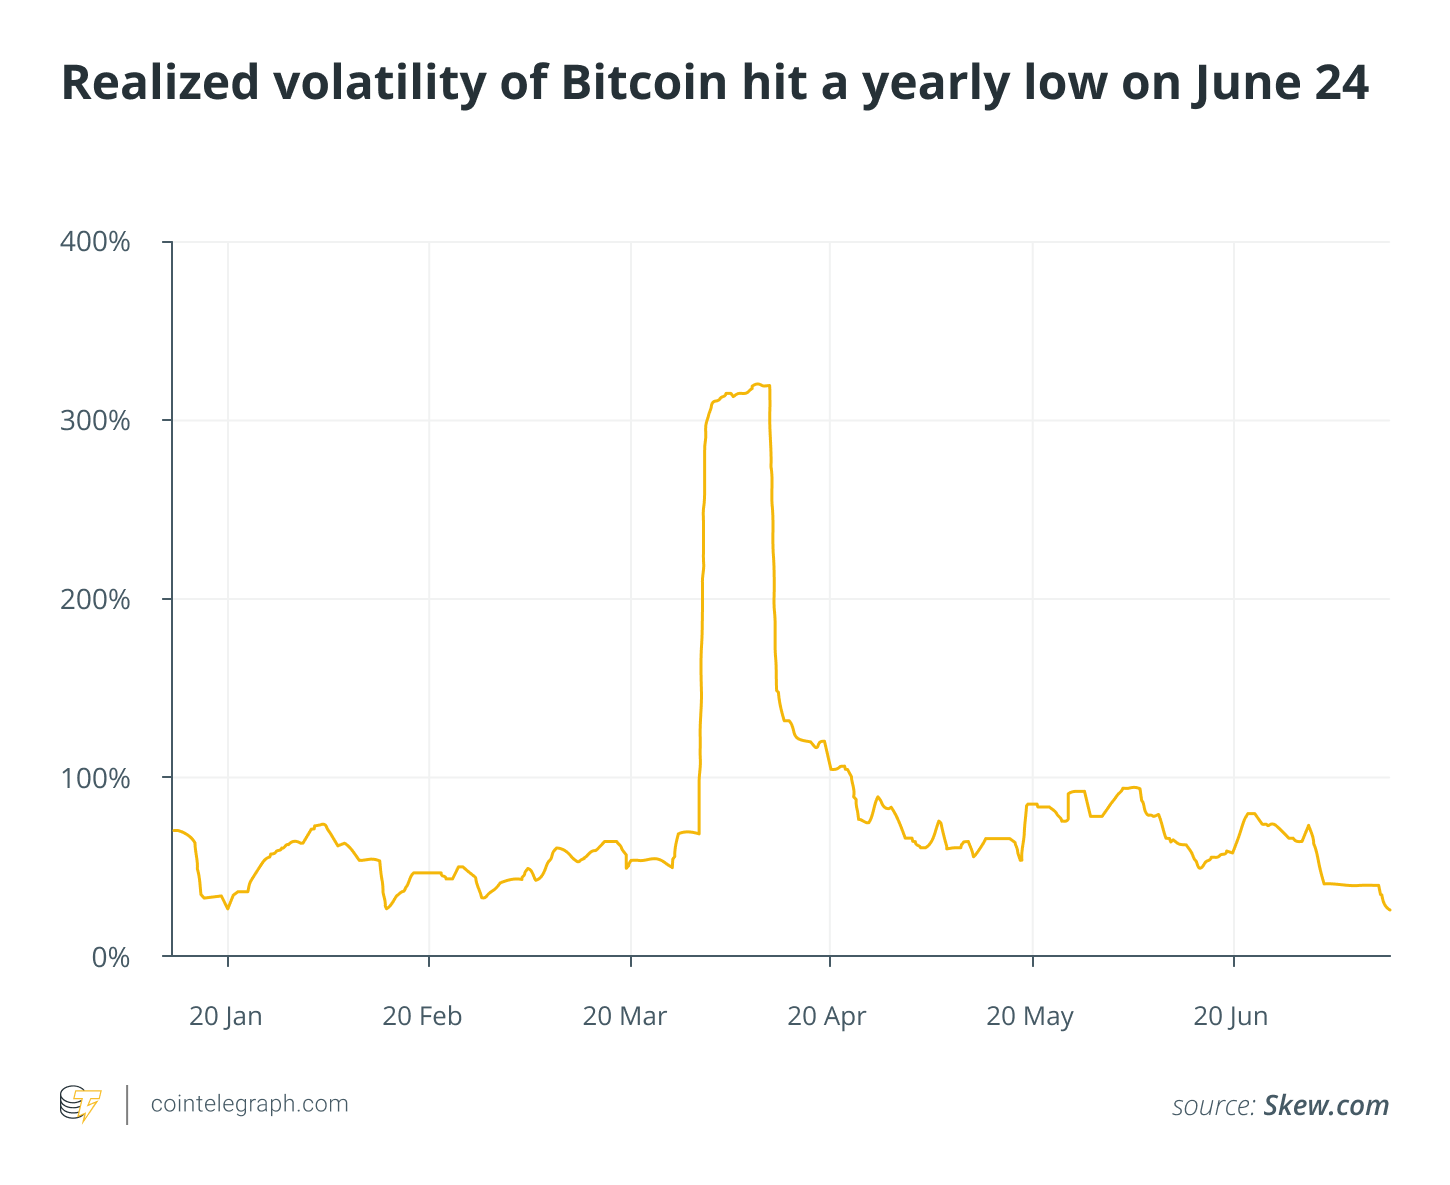 The realized volatility of Bitcoin reached an annual low on June 24th